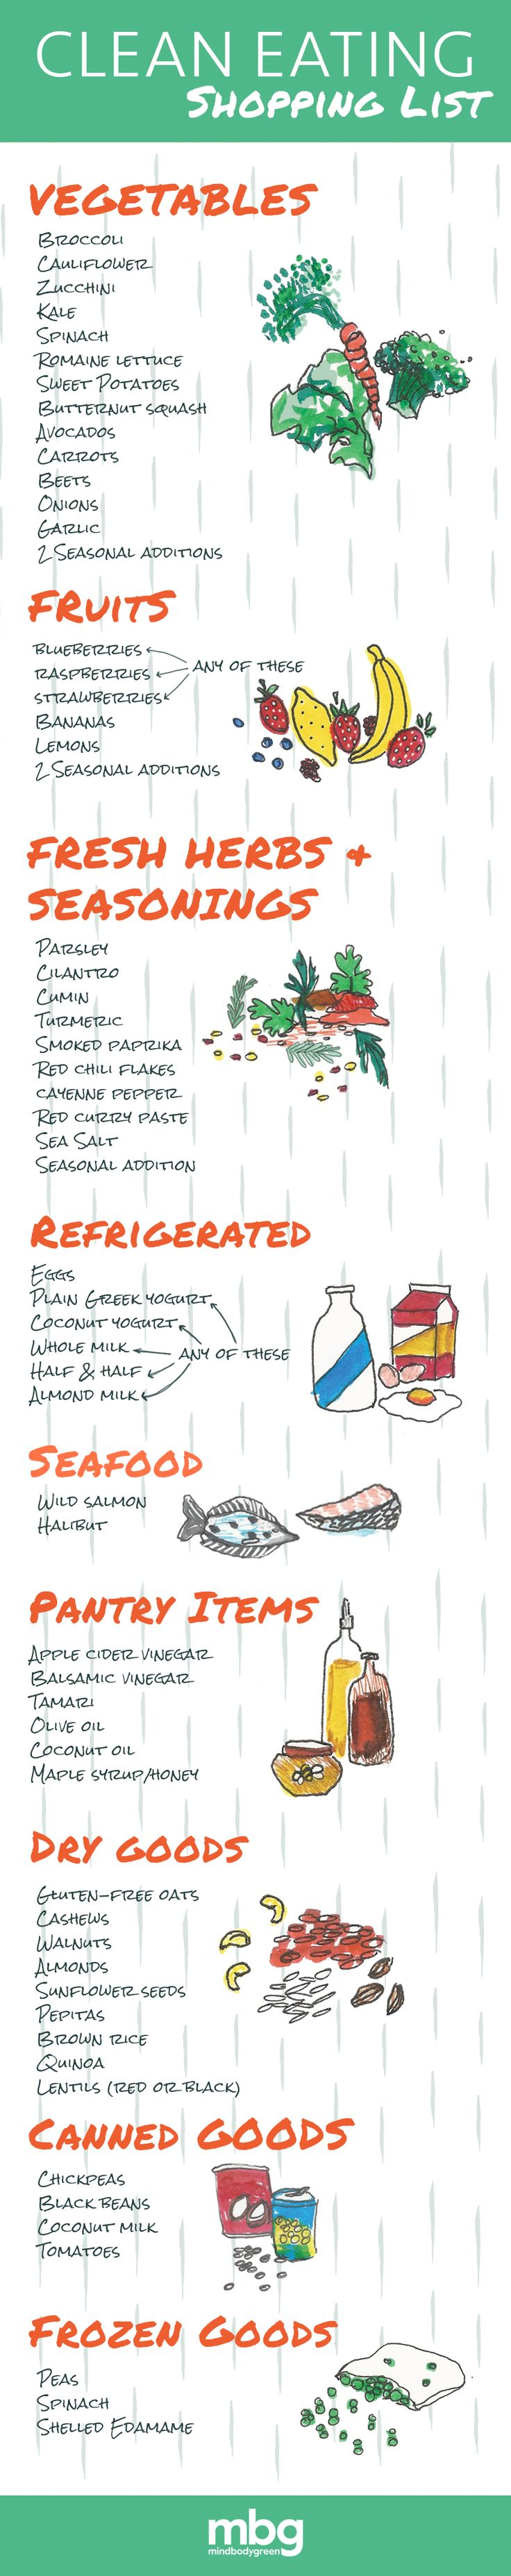 Want To Eat Clean? Here's The Only Shopping List You'll Ever Need - mindbodygreen.com